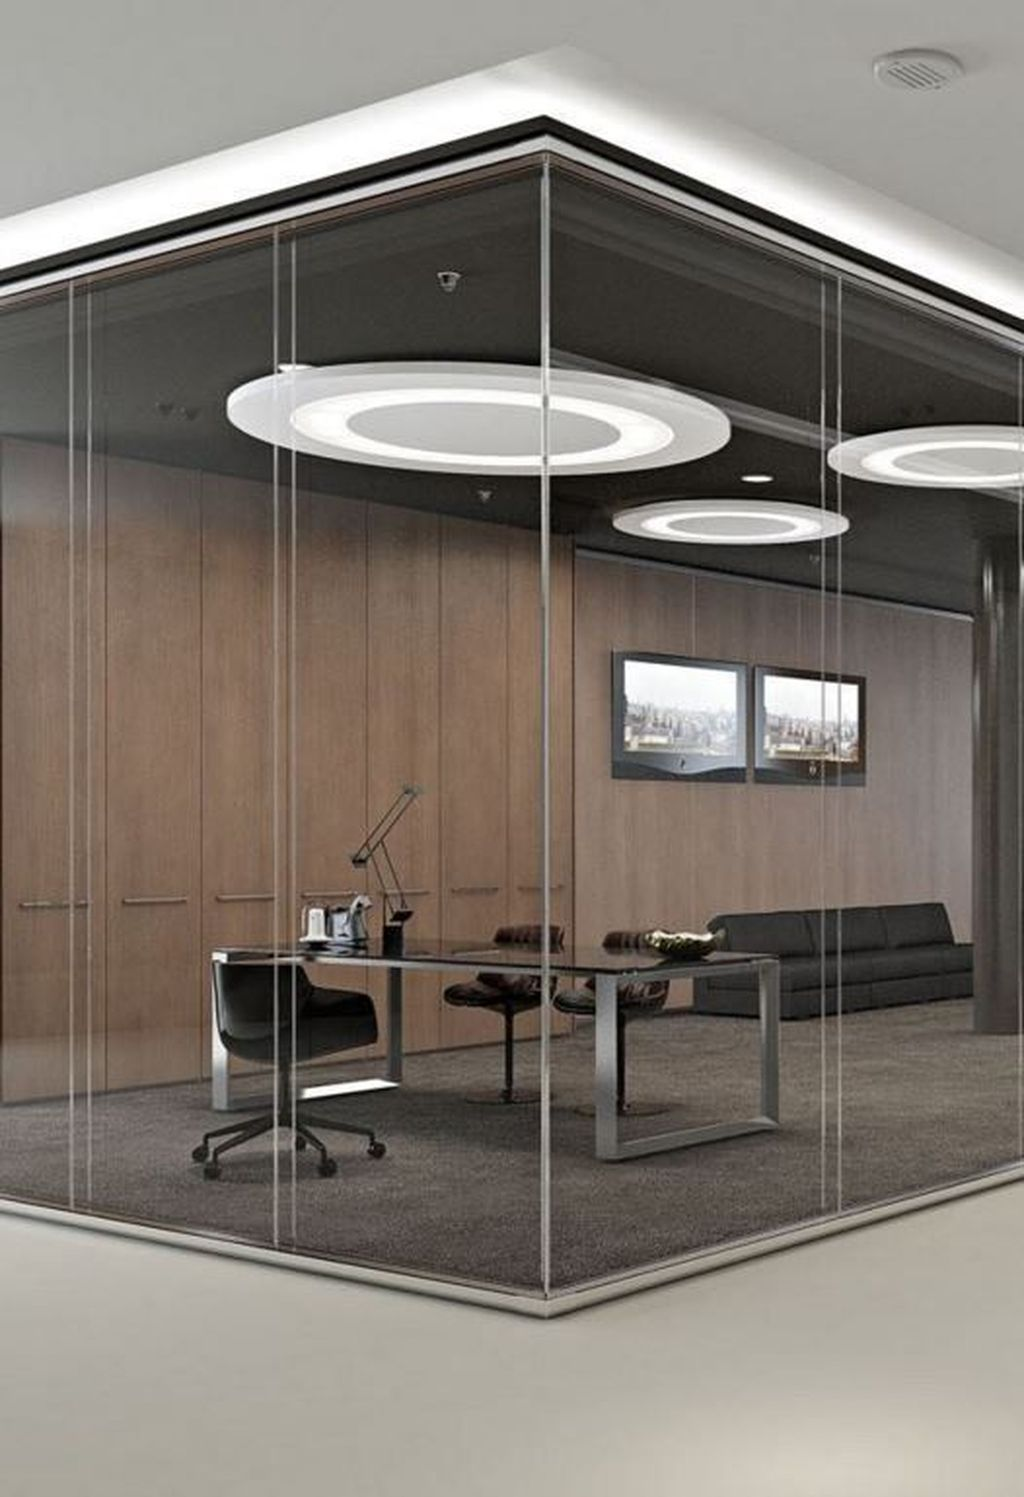 Home Design Business Ideas: Office Design Corporate Business Is Utterly Important For